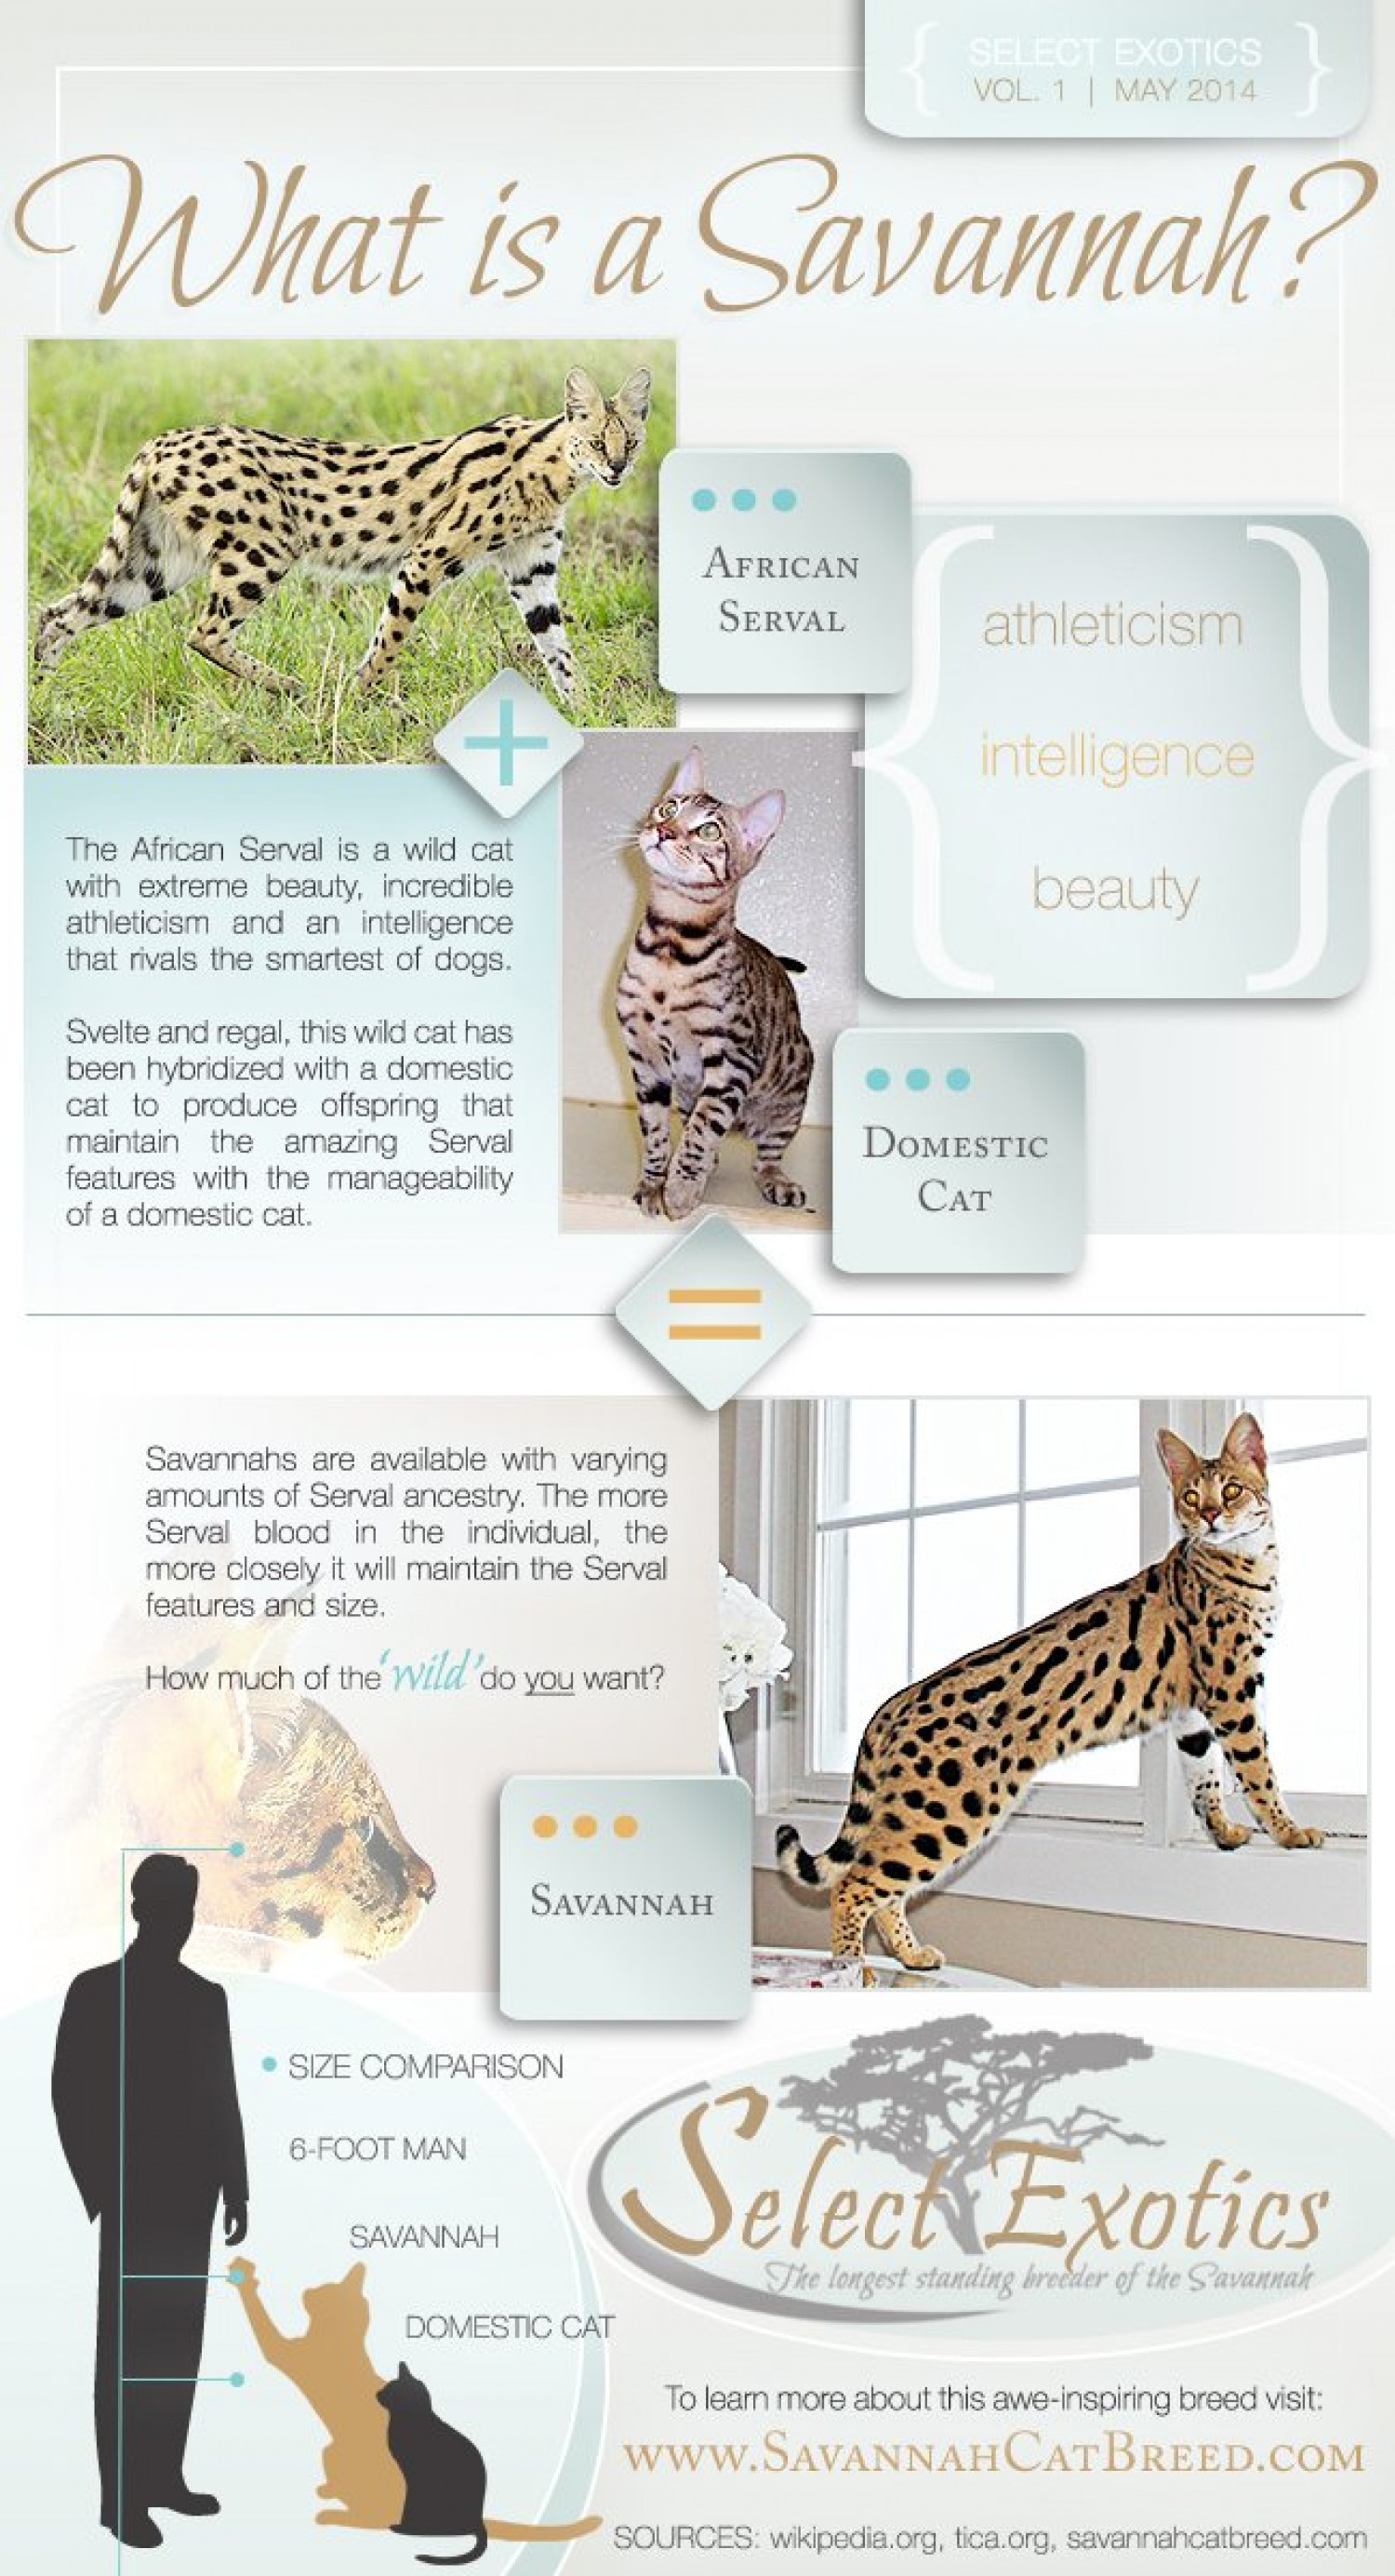 What Is a Savannah? Infographic